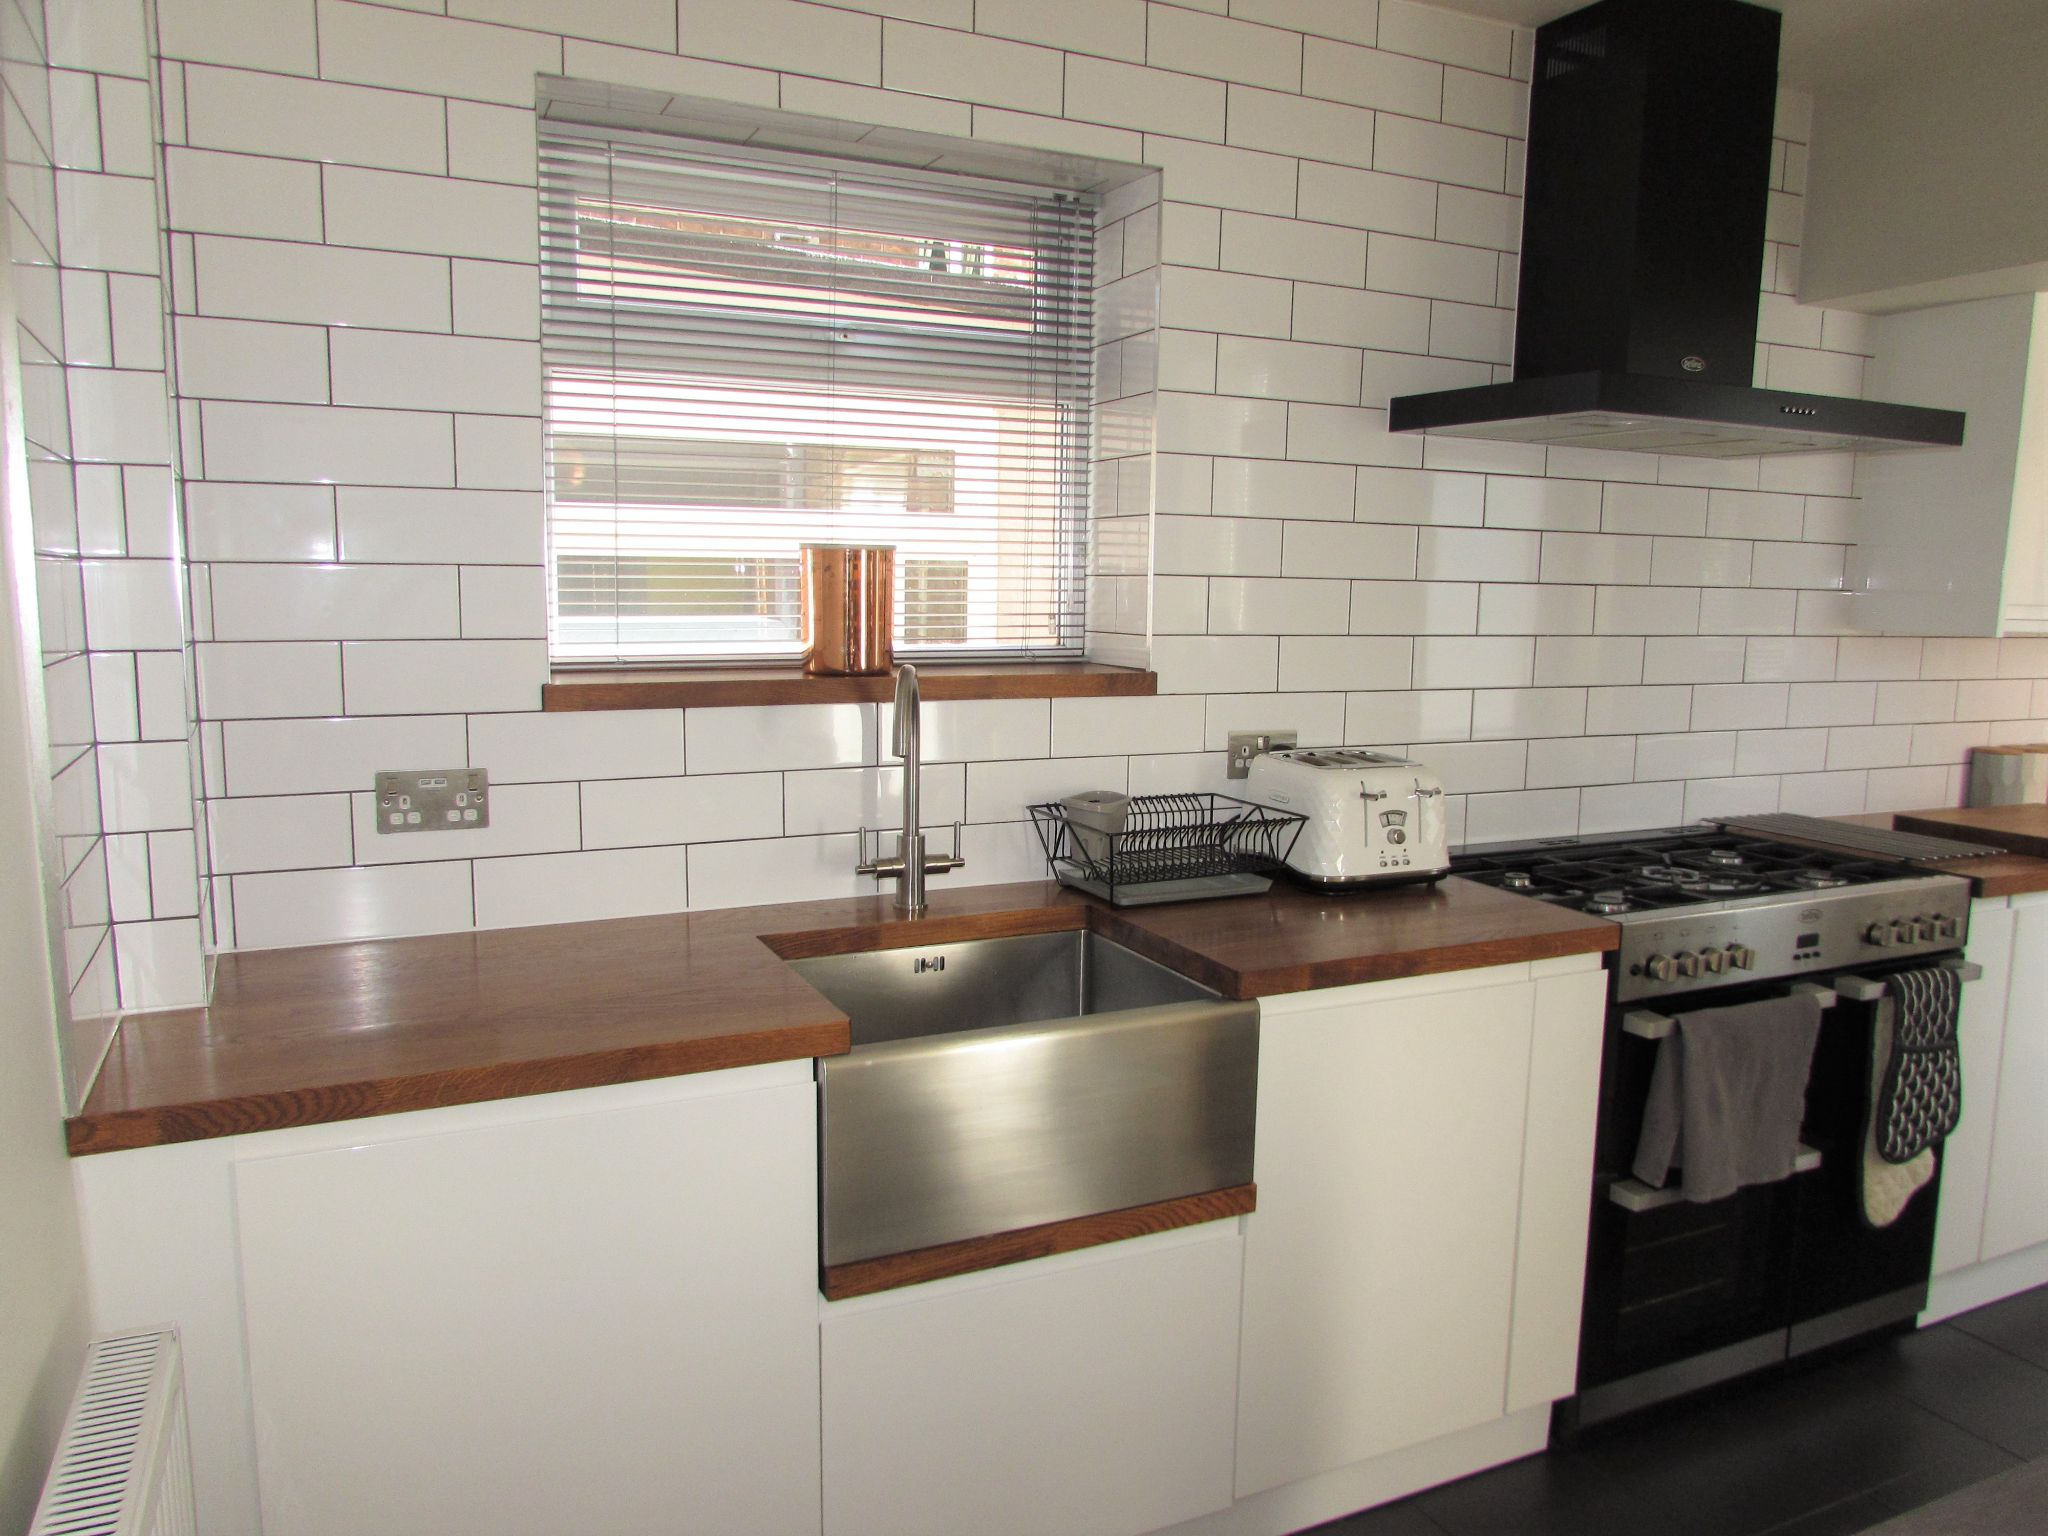 3 Bedroom Semi-detached House For Sale - Photograph 6